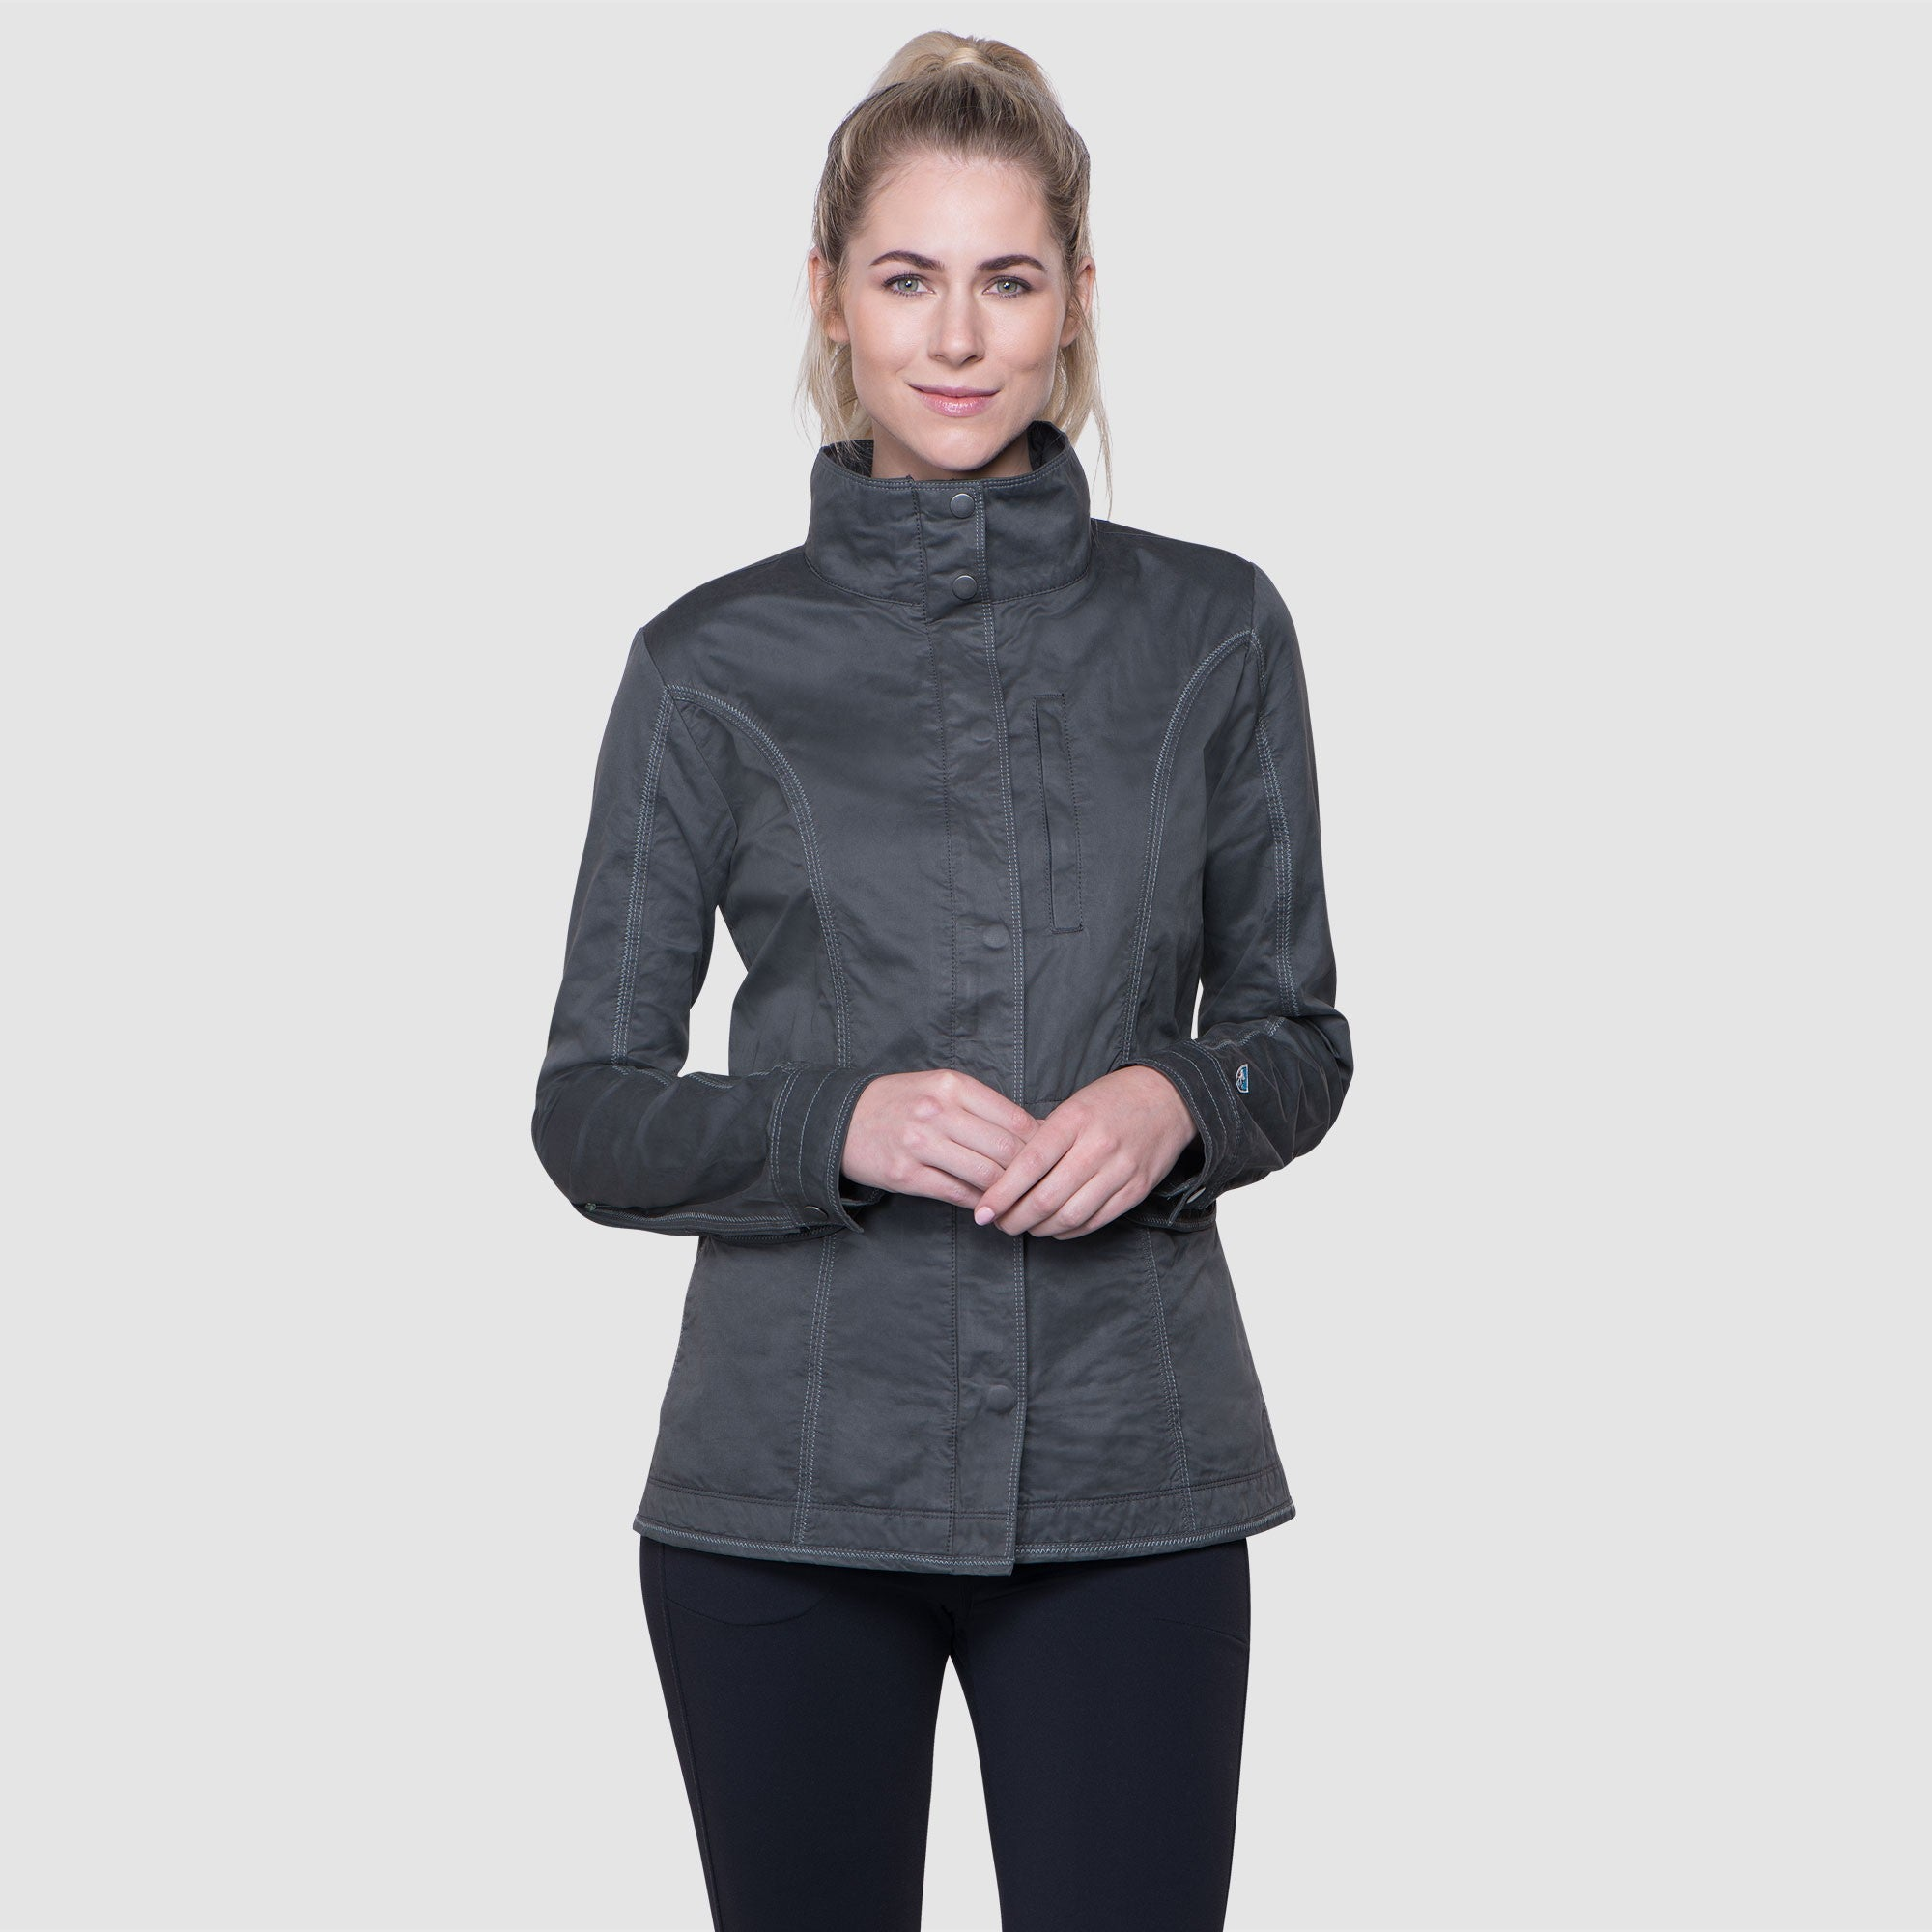 Kuhl Luna Jacket for Ladies in Carbon